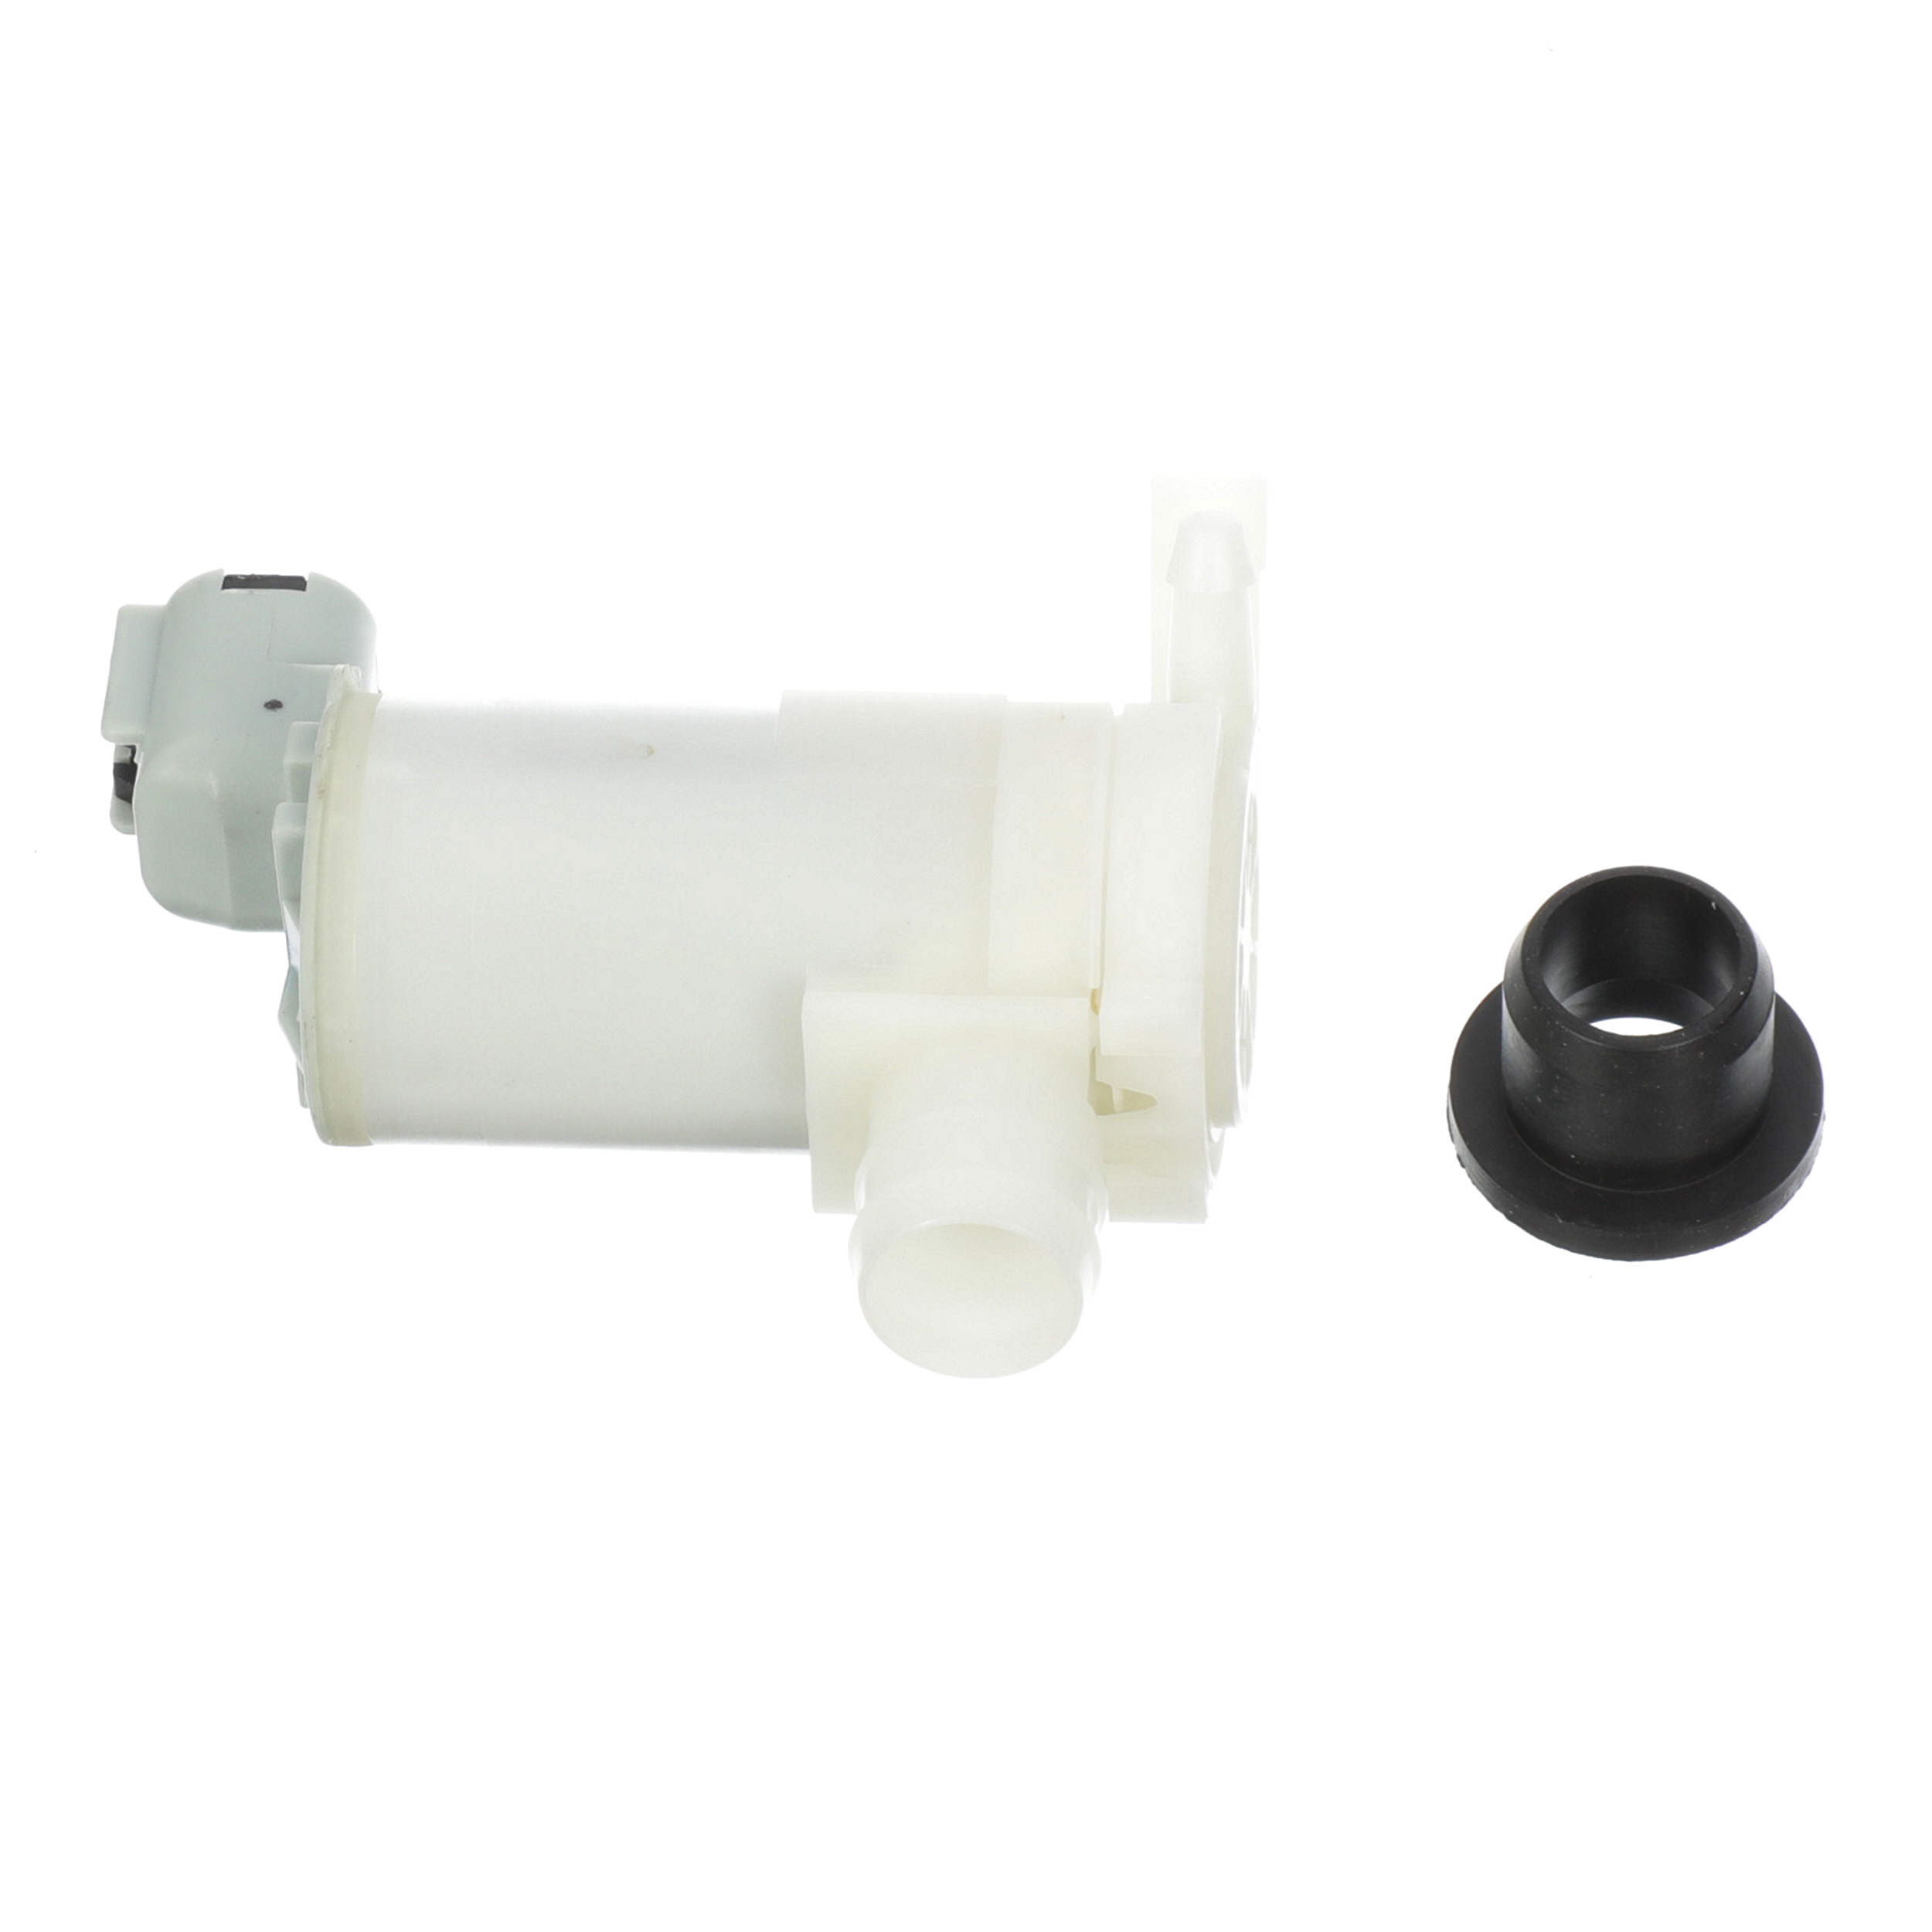 Windshield Washer Pump Fit For Juke Nissan Front And Rear Windows Part Number furthermore Large additionally S L further E together with S L. on nissan frontier windshield washer fluid pump